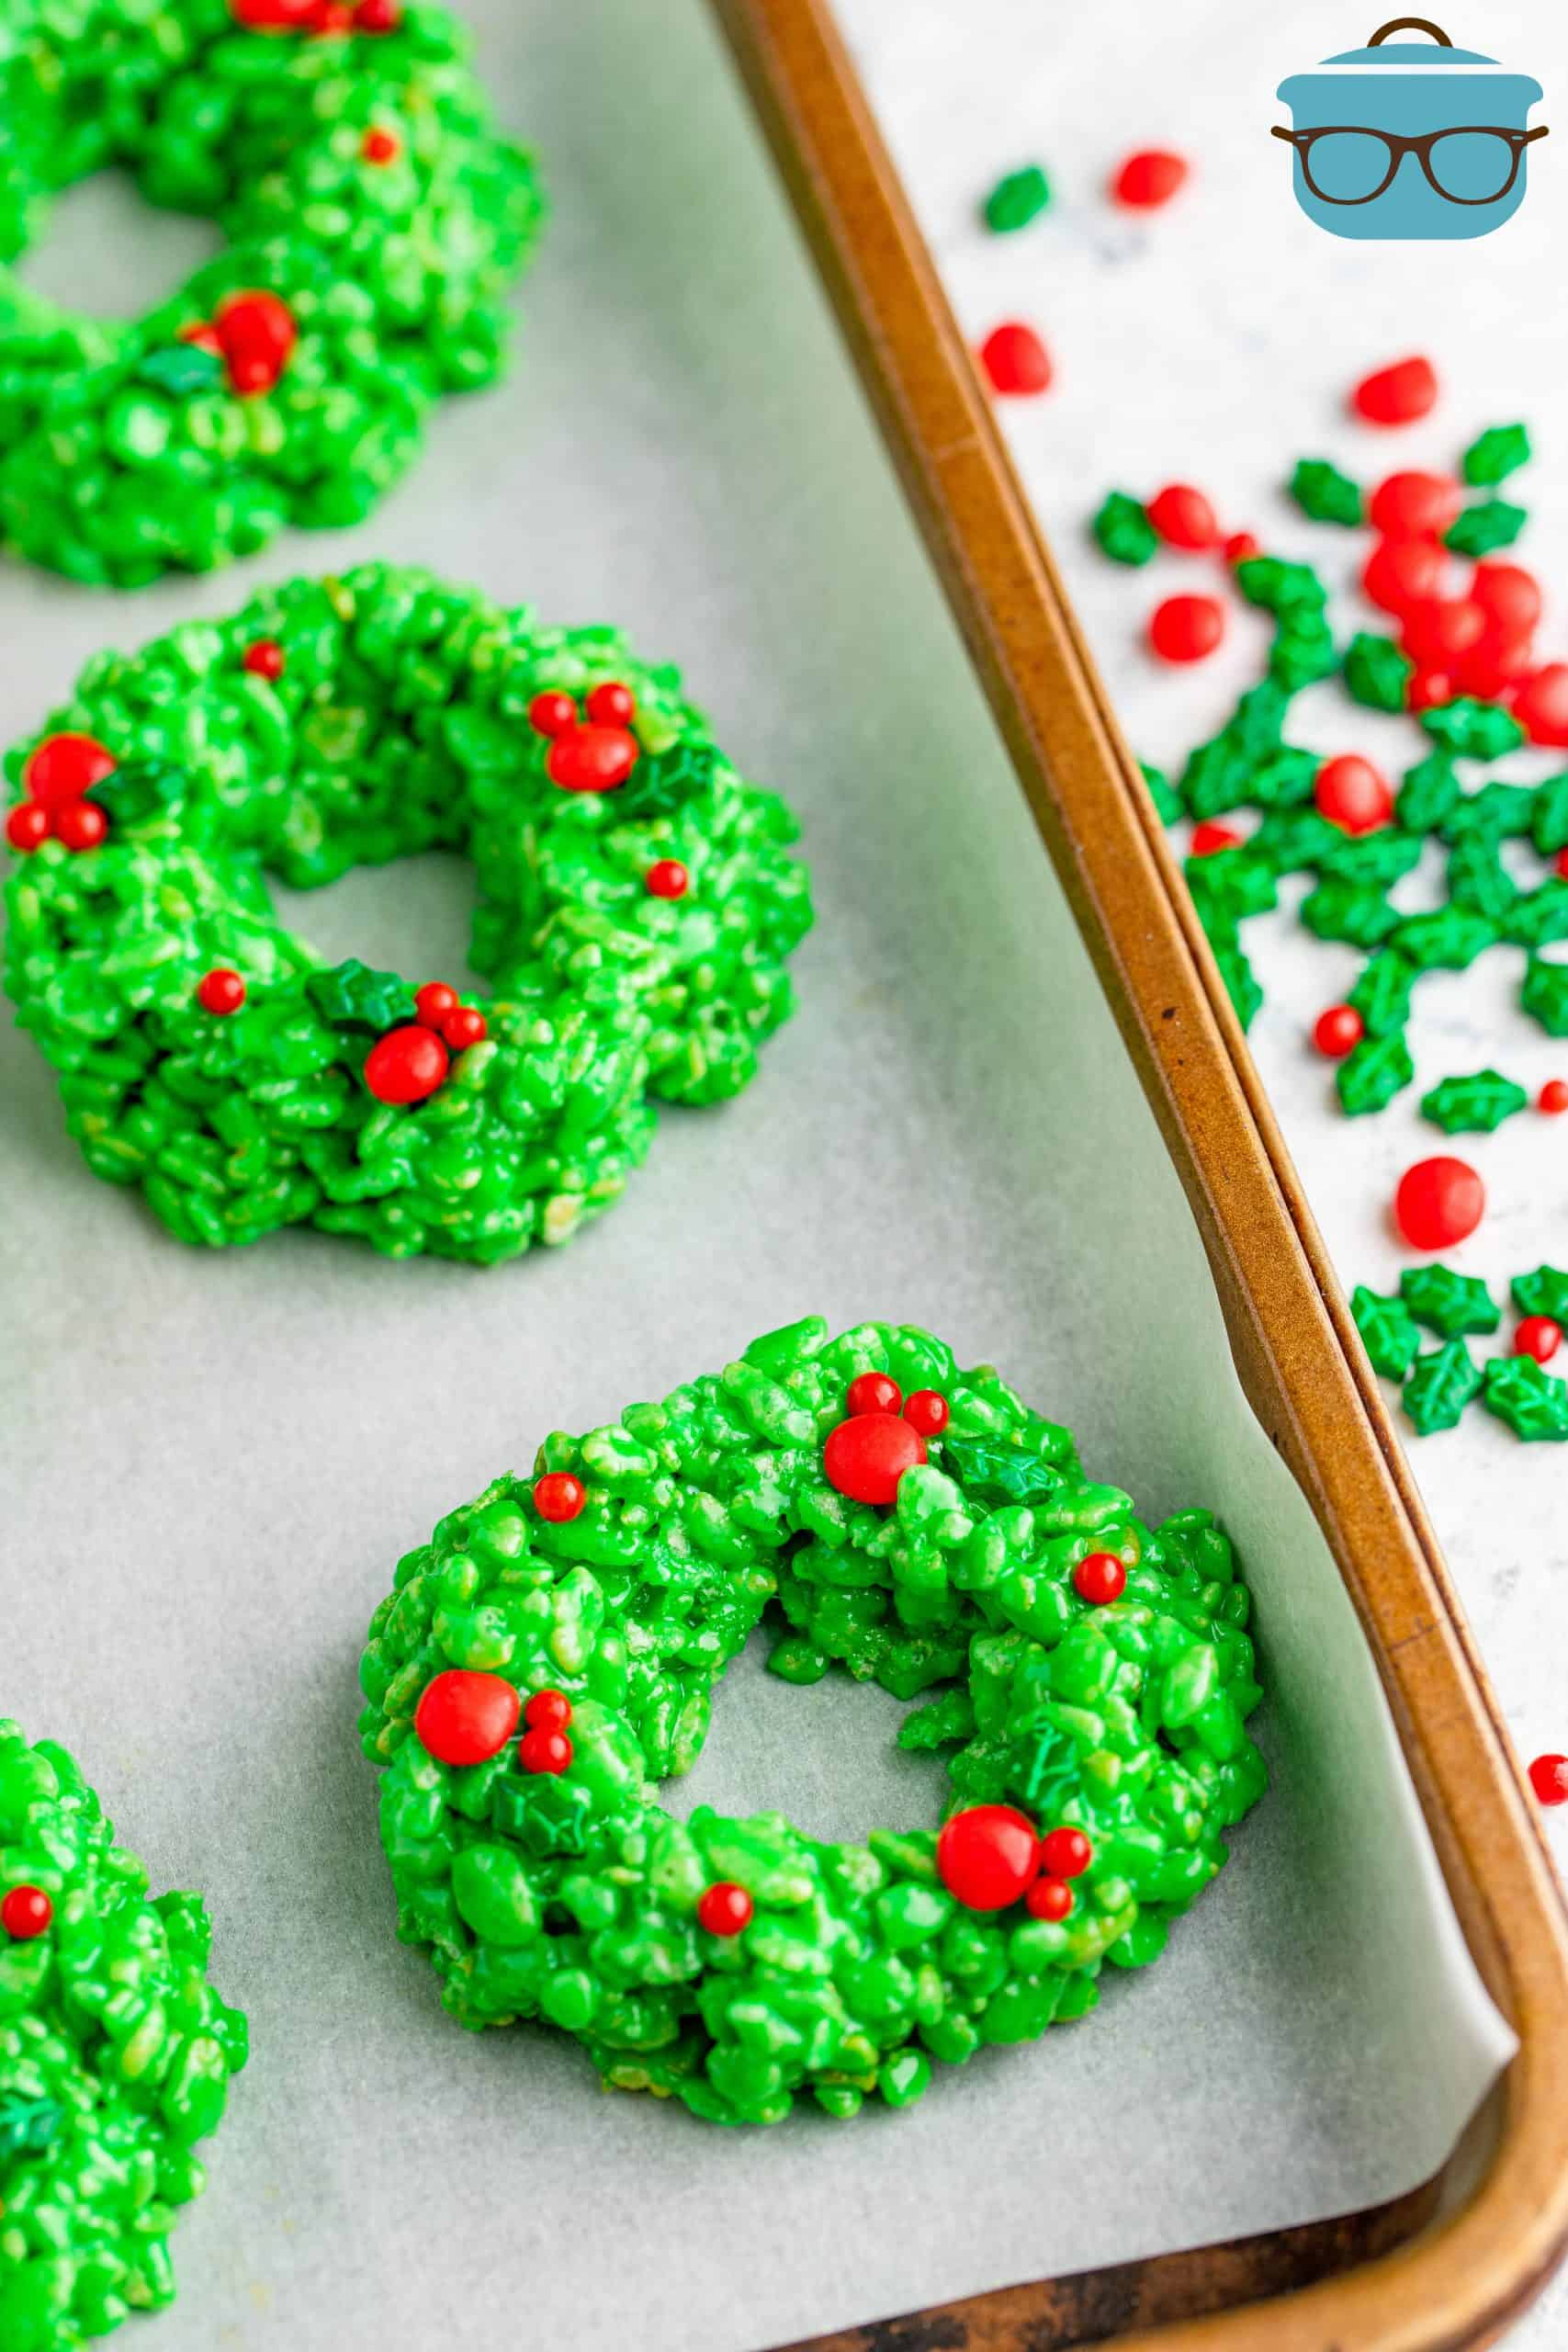 finished krispy wreaths on a baking tray lined with parchment paper.